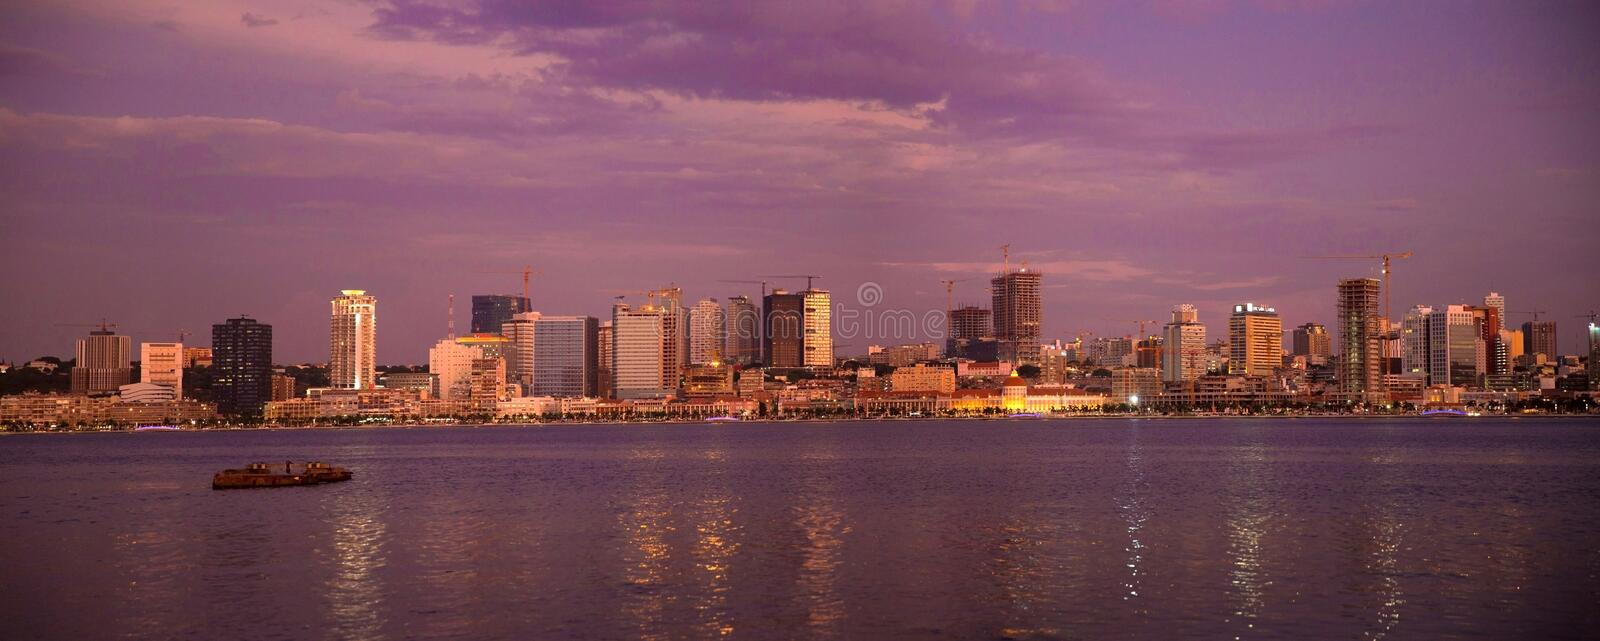 Luanda Bay Skyline Panorama, Purple Sunset, Angola Cityscape, Africa royalty free stock photo